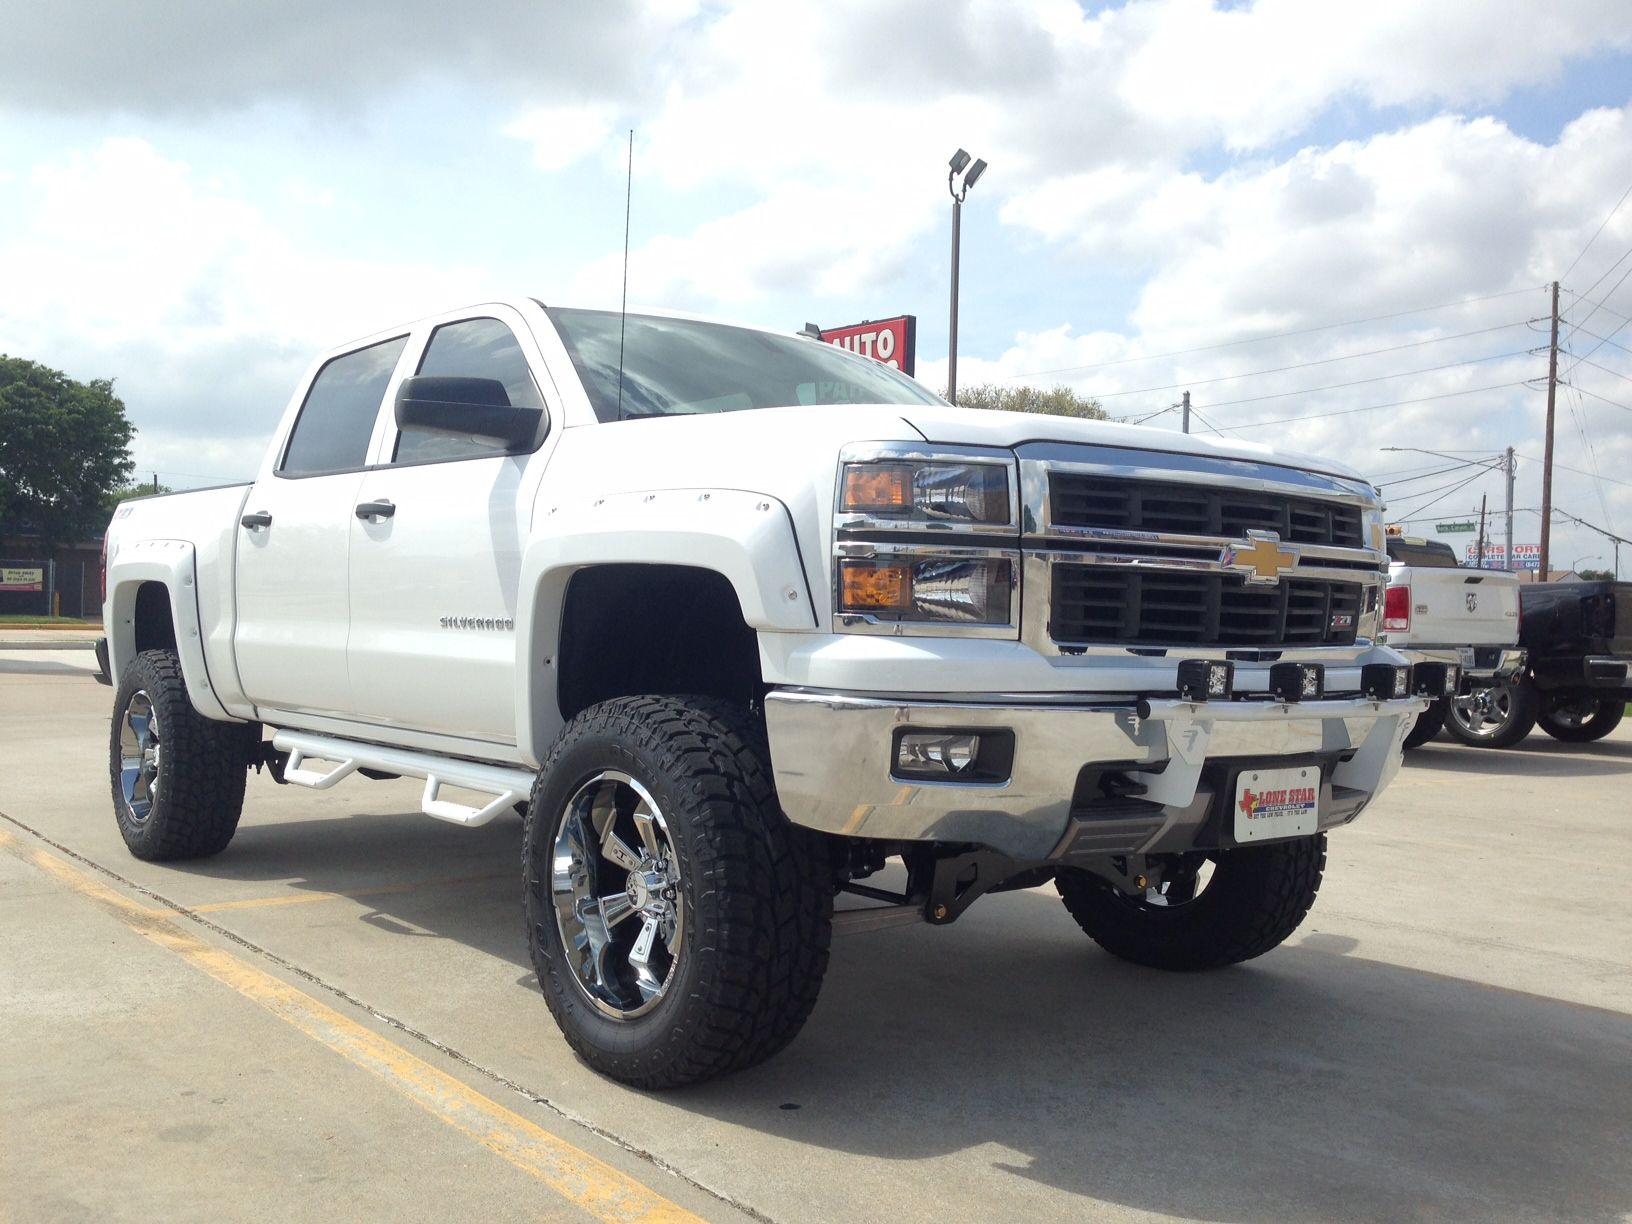 N Fab Light Bar Chevrolet Silverado 1500 Gloss Black